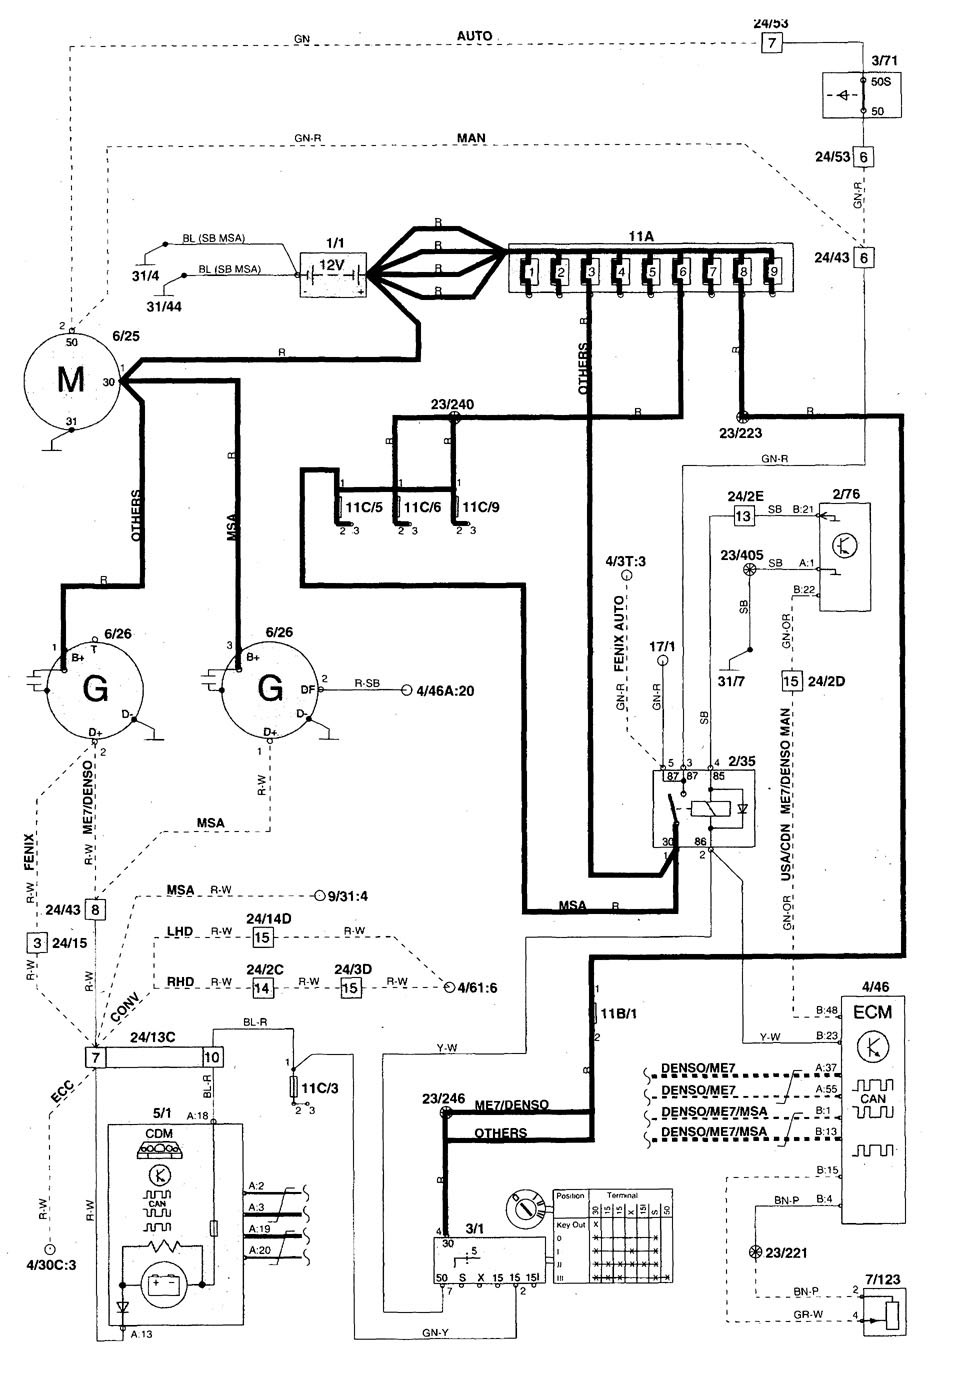 hight resolution of likewise volvo wiring diagram fh 16 638 likewise furthermore furthermore 4 3gi volvo wiring diagram 26